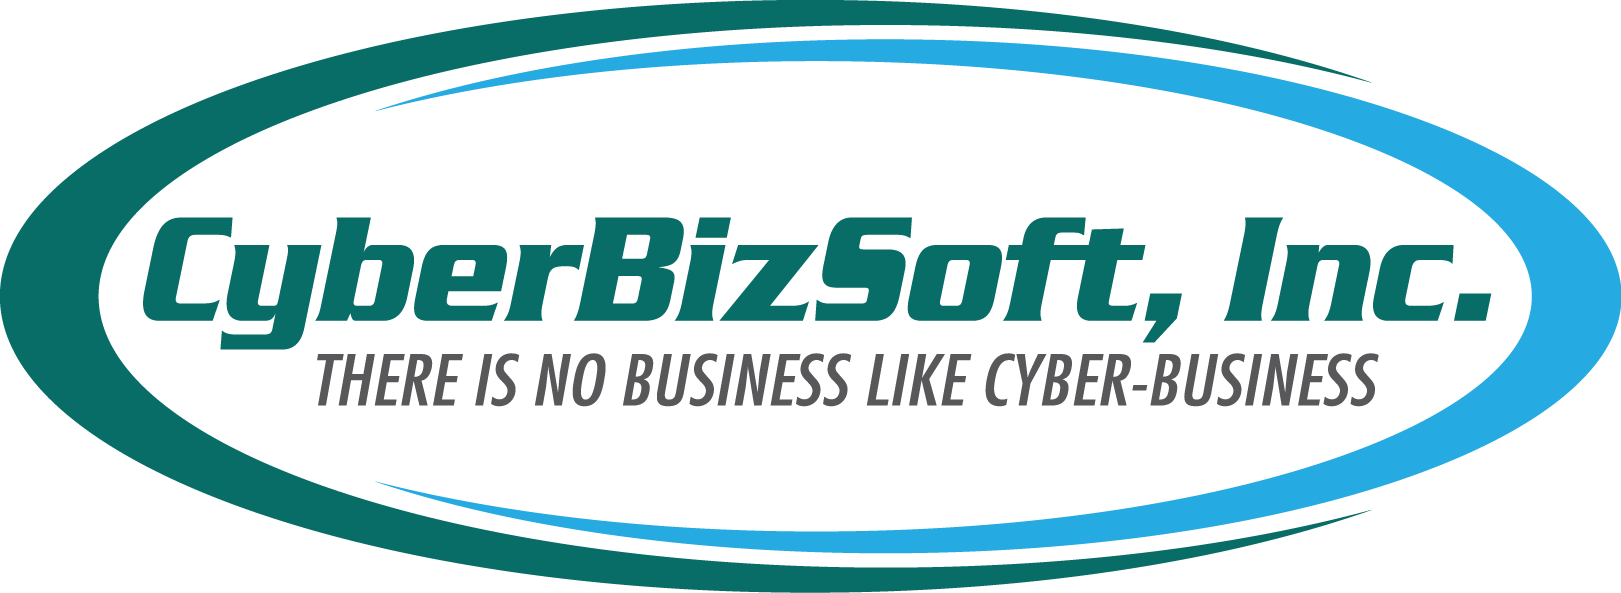 CyberBizSoft, Inc.